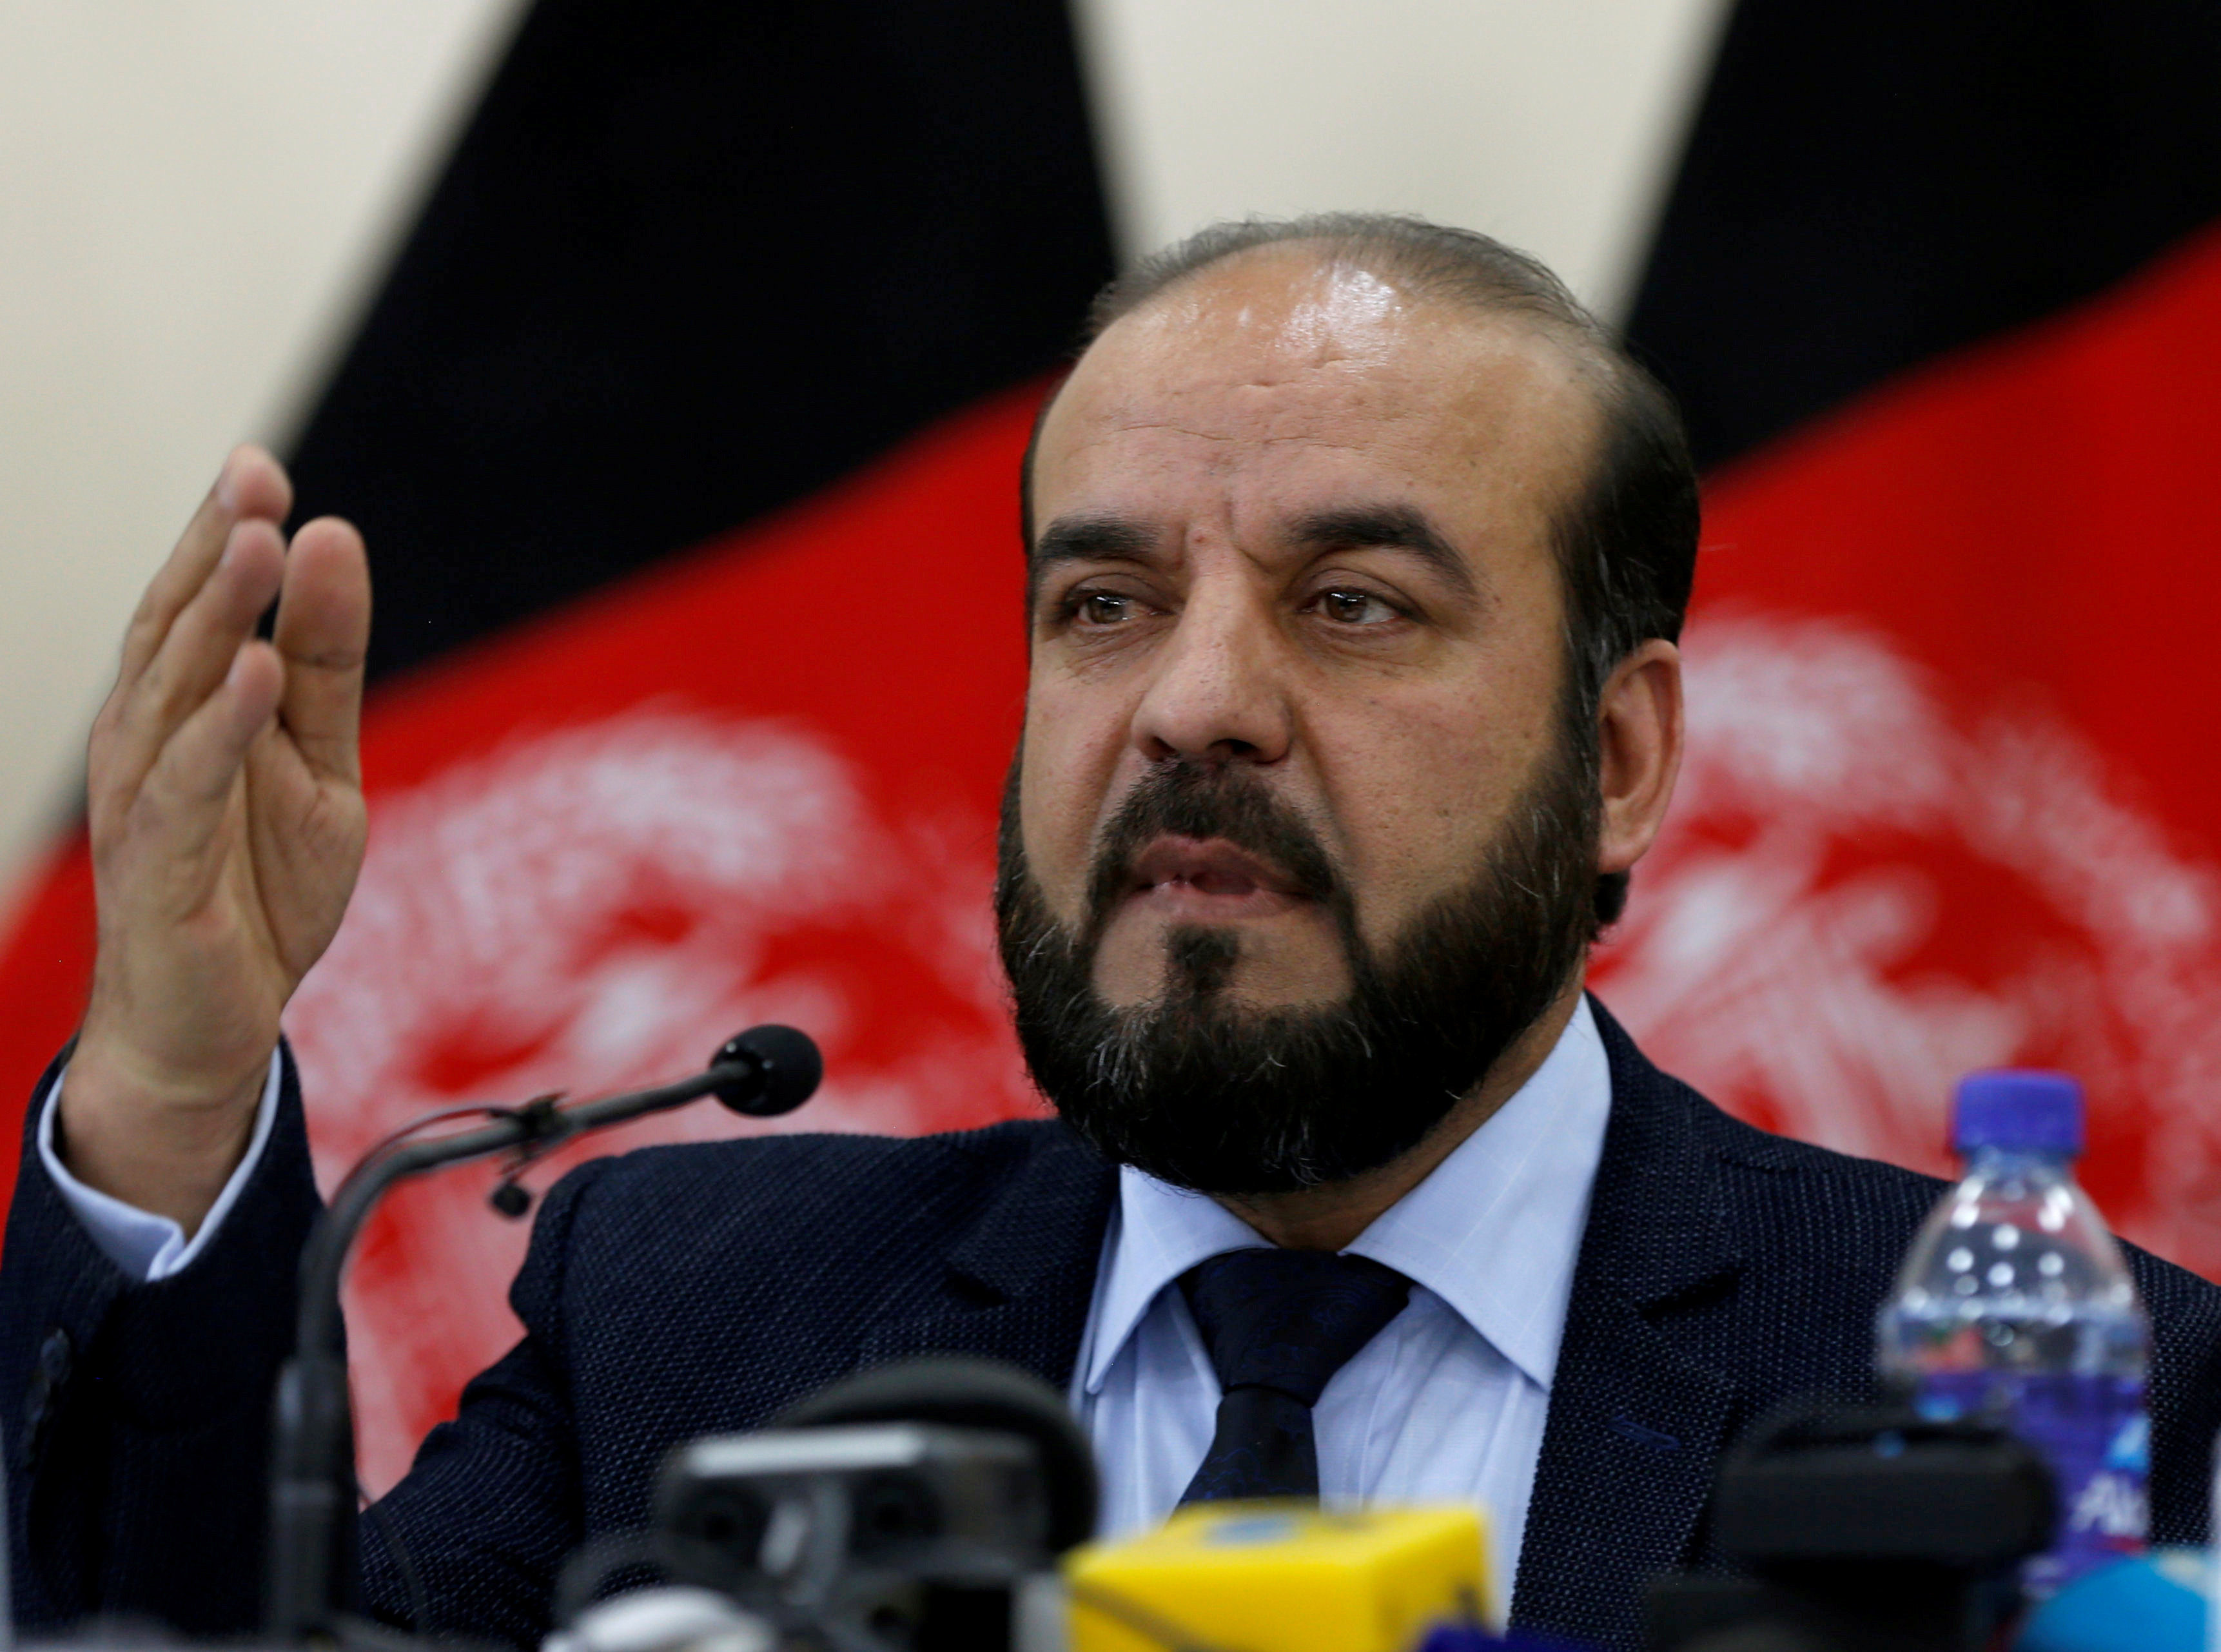 Afghanistan parliamentary election to be held on October 20